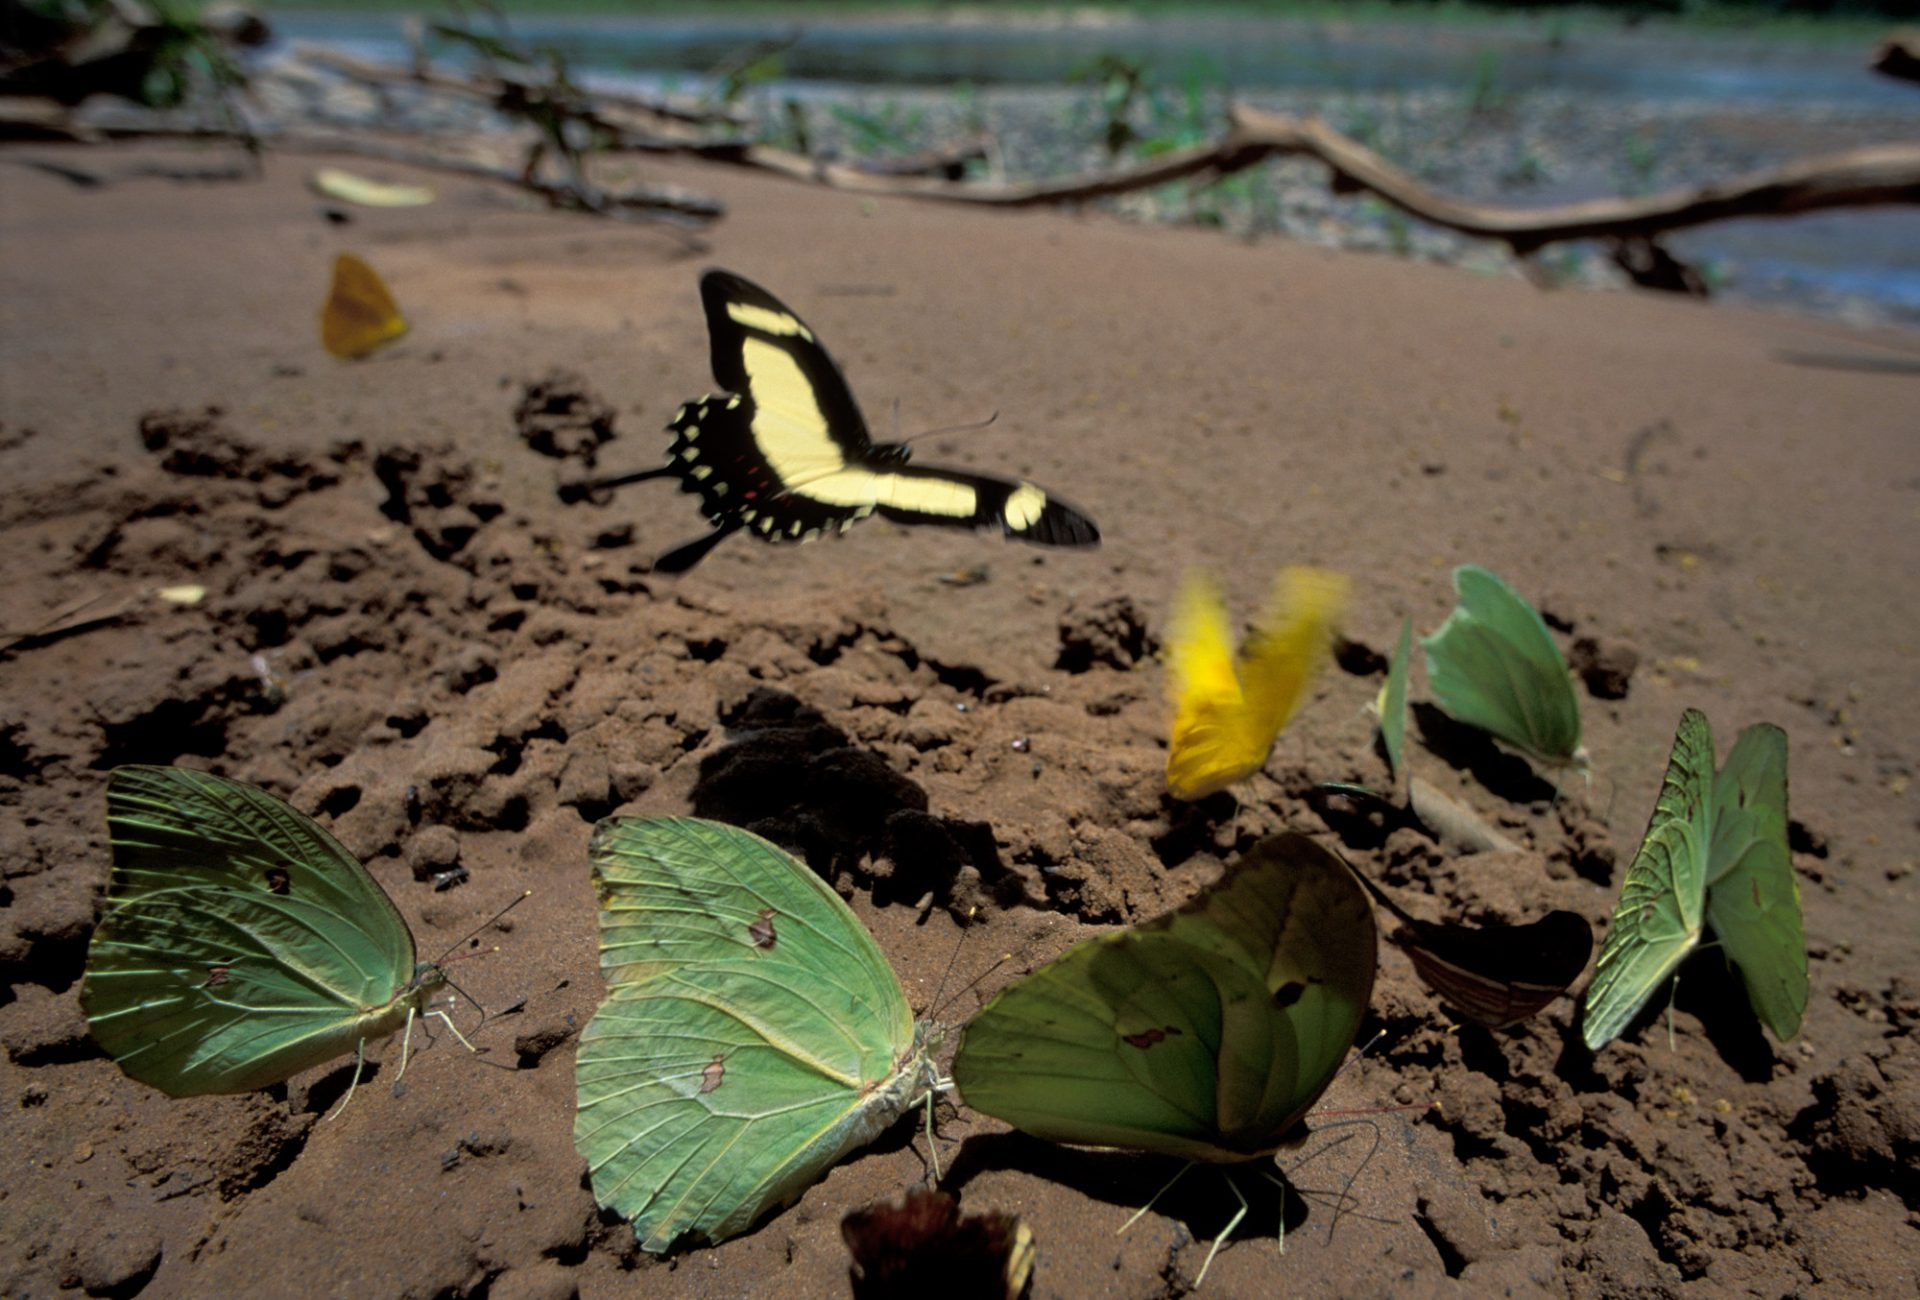 Photo: Pierid butterflies and a Swallowtail Butterfly drawn into the salt and minerals on a beach along the Tuichi River in Madidi National Park, Bolivia.